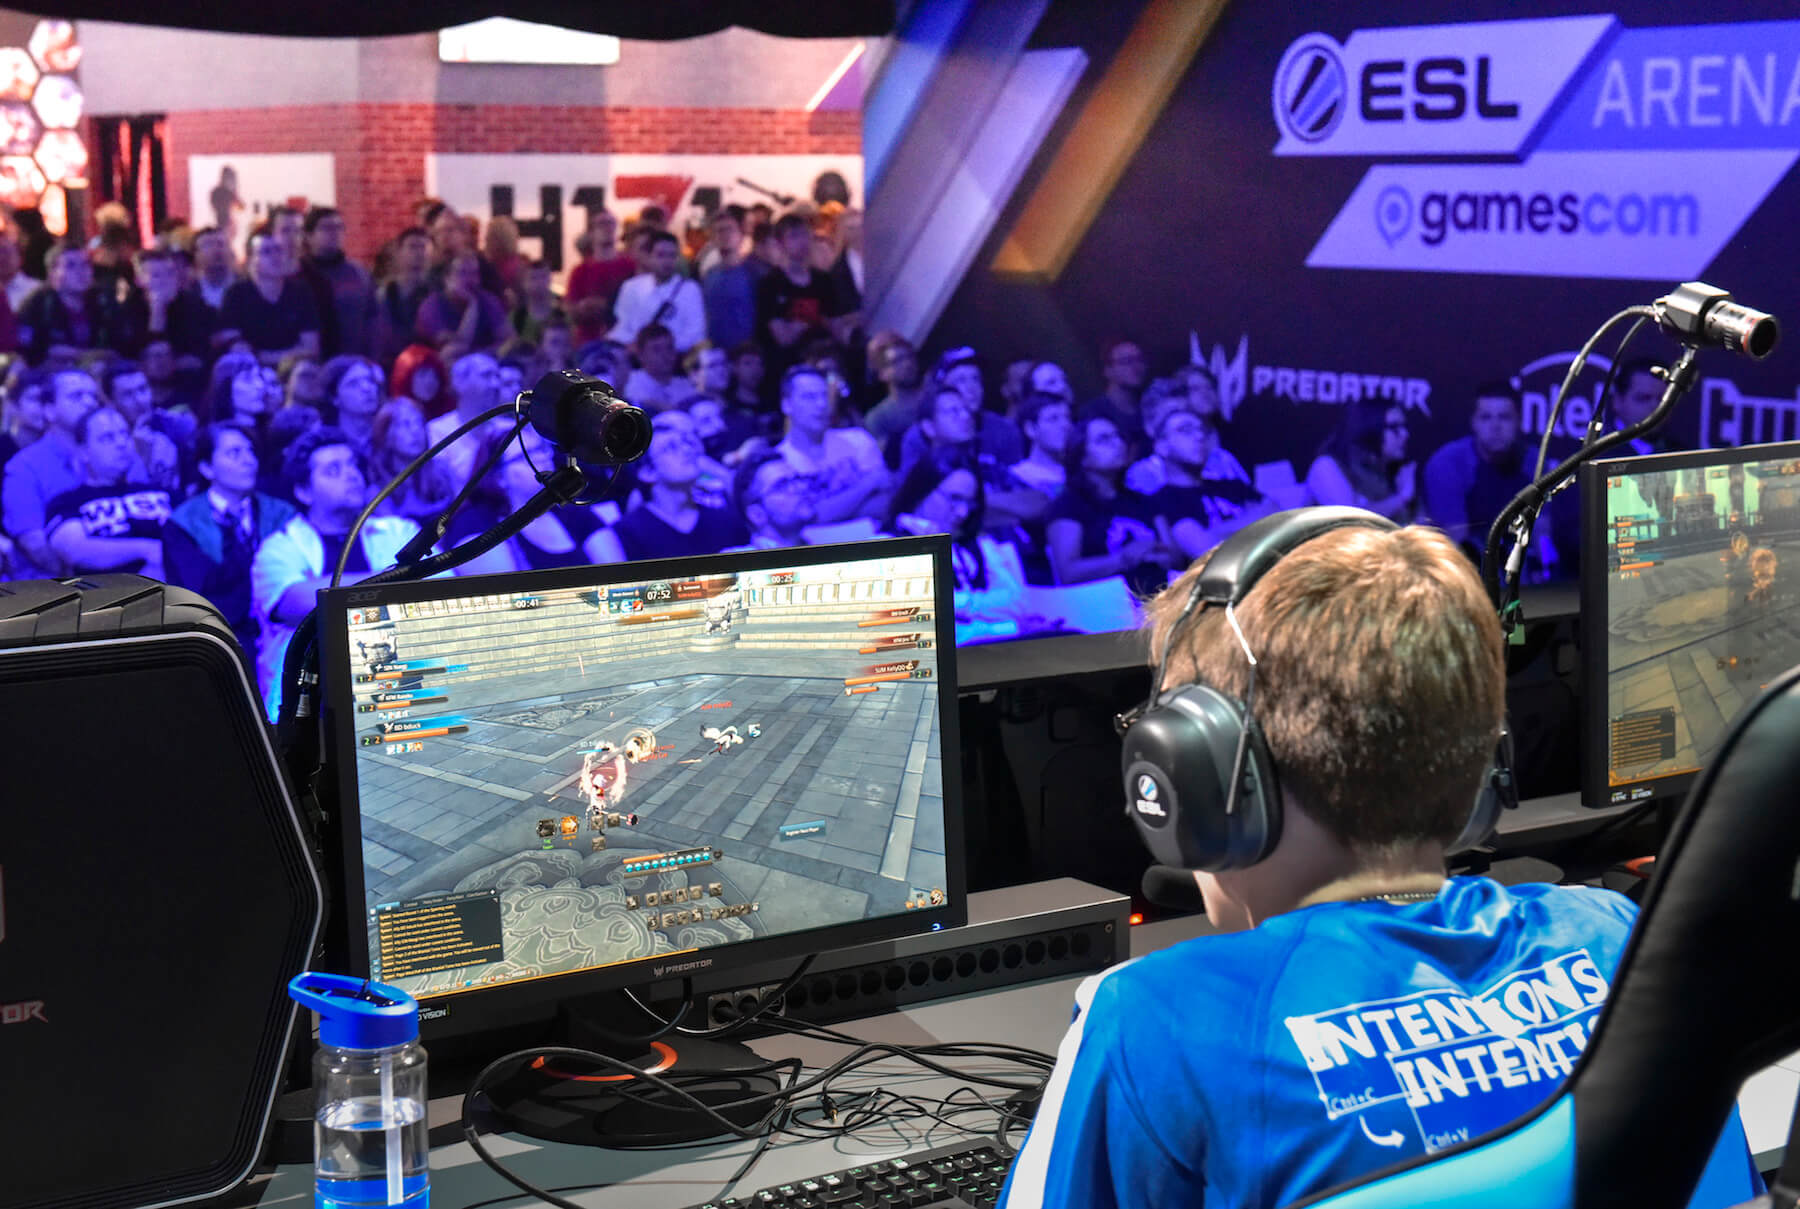 Gamescom 2017: gamescom ESL arena, Stand: Turtle Entertainment, Halle 9 (Bildrechte: Koelnmesse GmbH, Thomas Klerx)